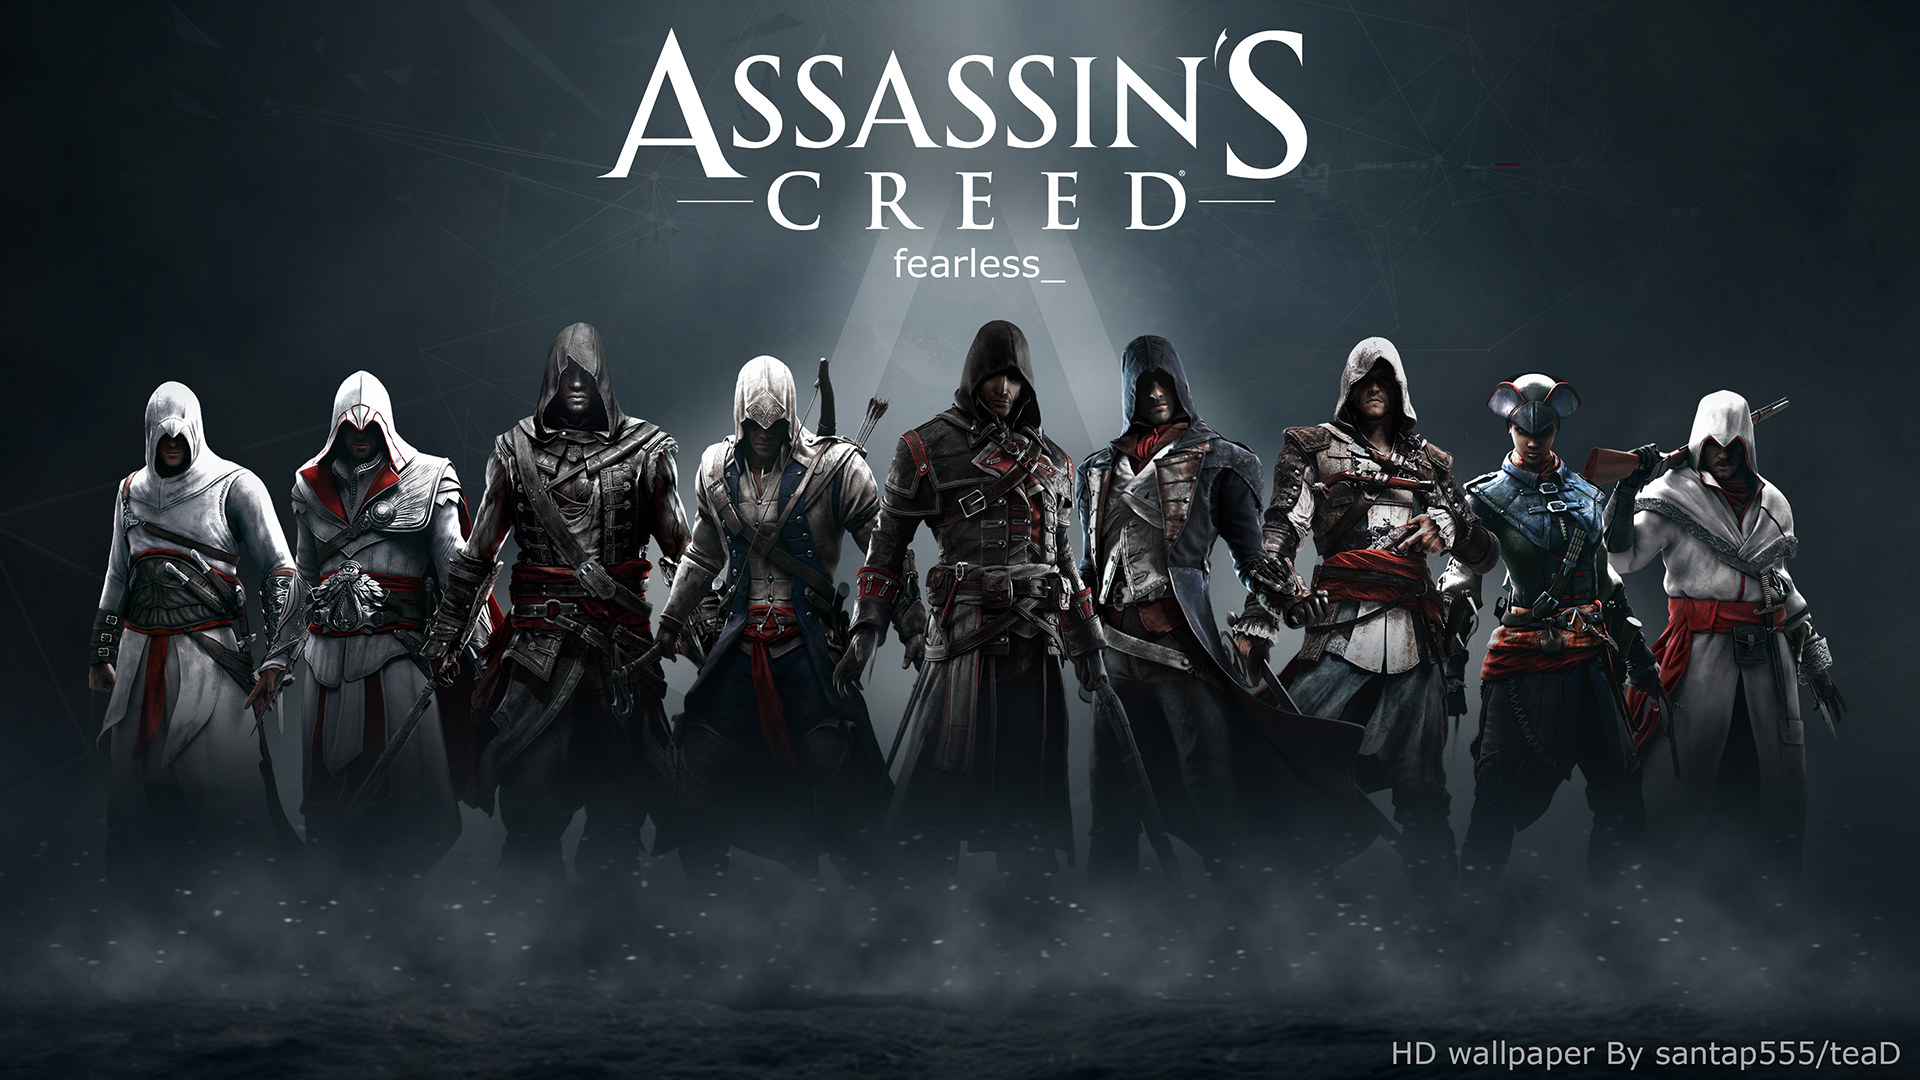 Assassin's Creed HD Wallpaper 2 By TeaD By Santap555 On